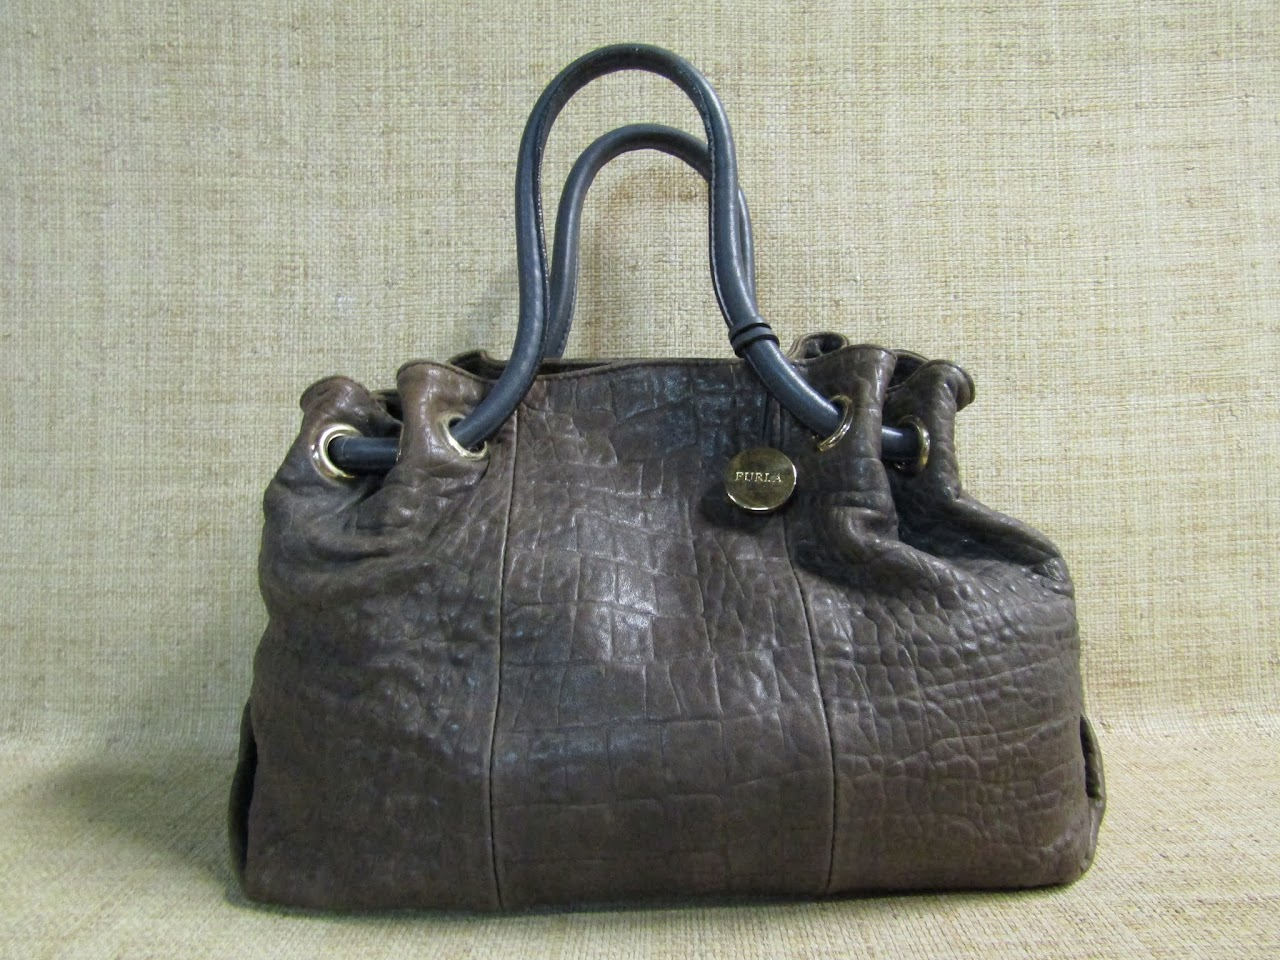 Furla Textured Bucket Bag